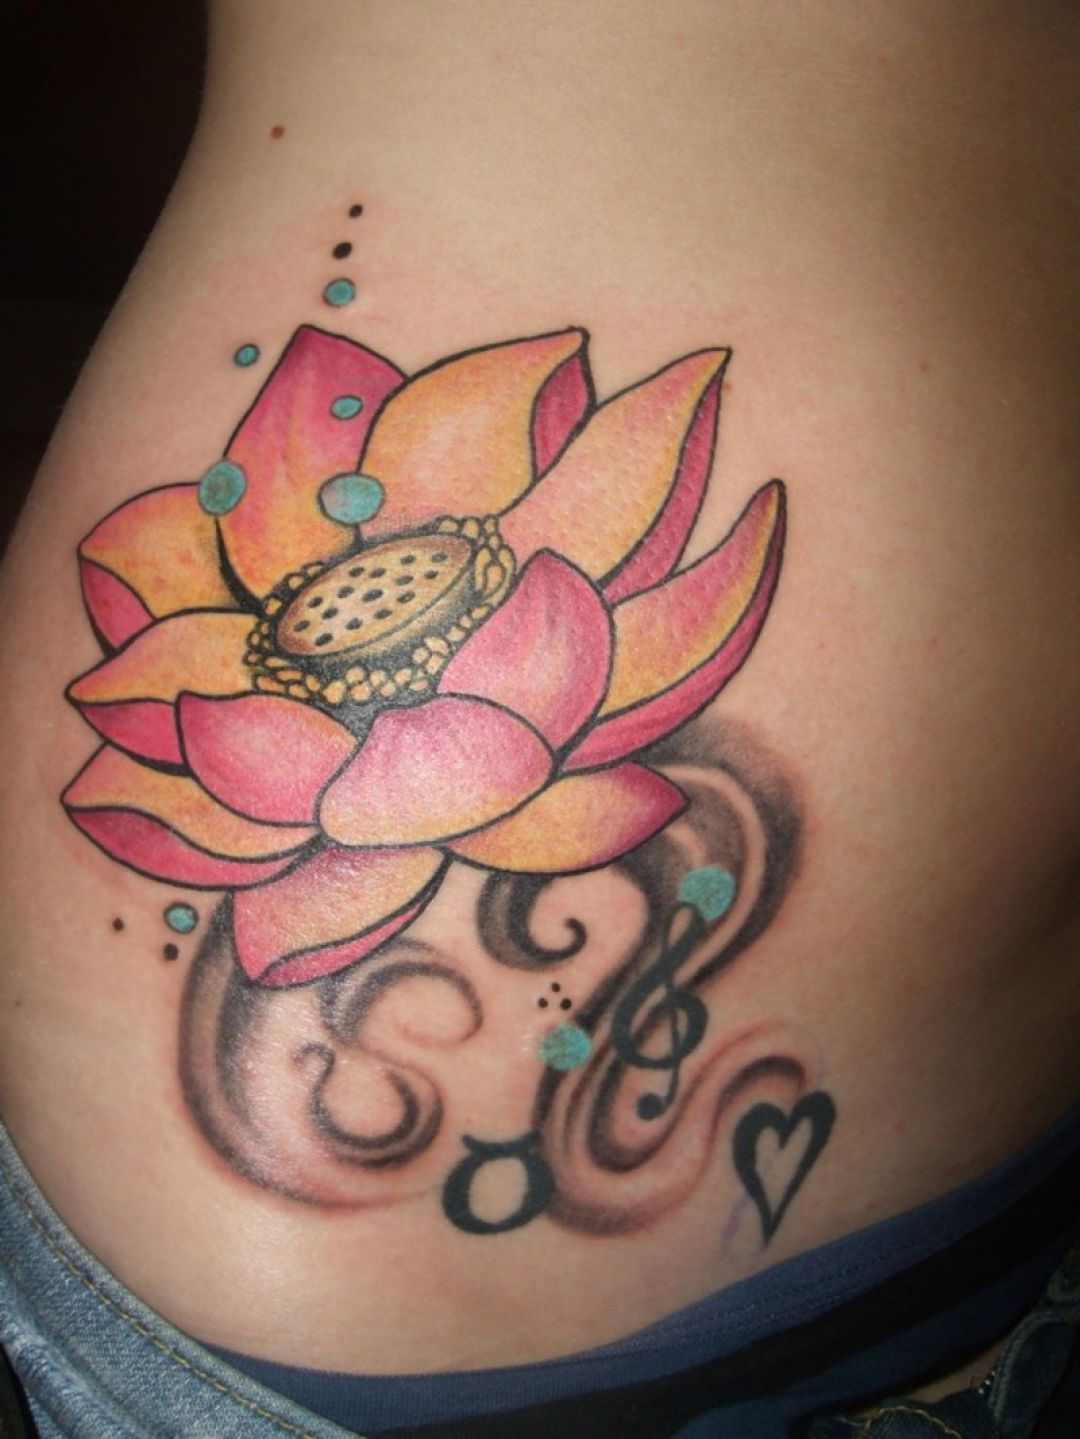 Pink Lotus Flower Ribs Tattoo Design (286214) - Best  Tattoos